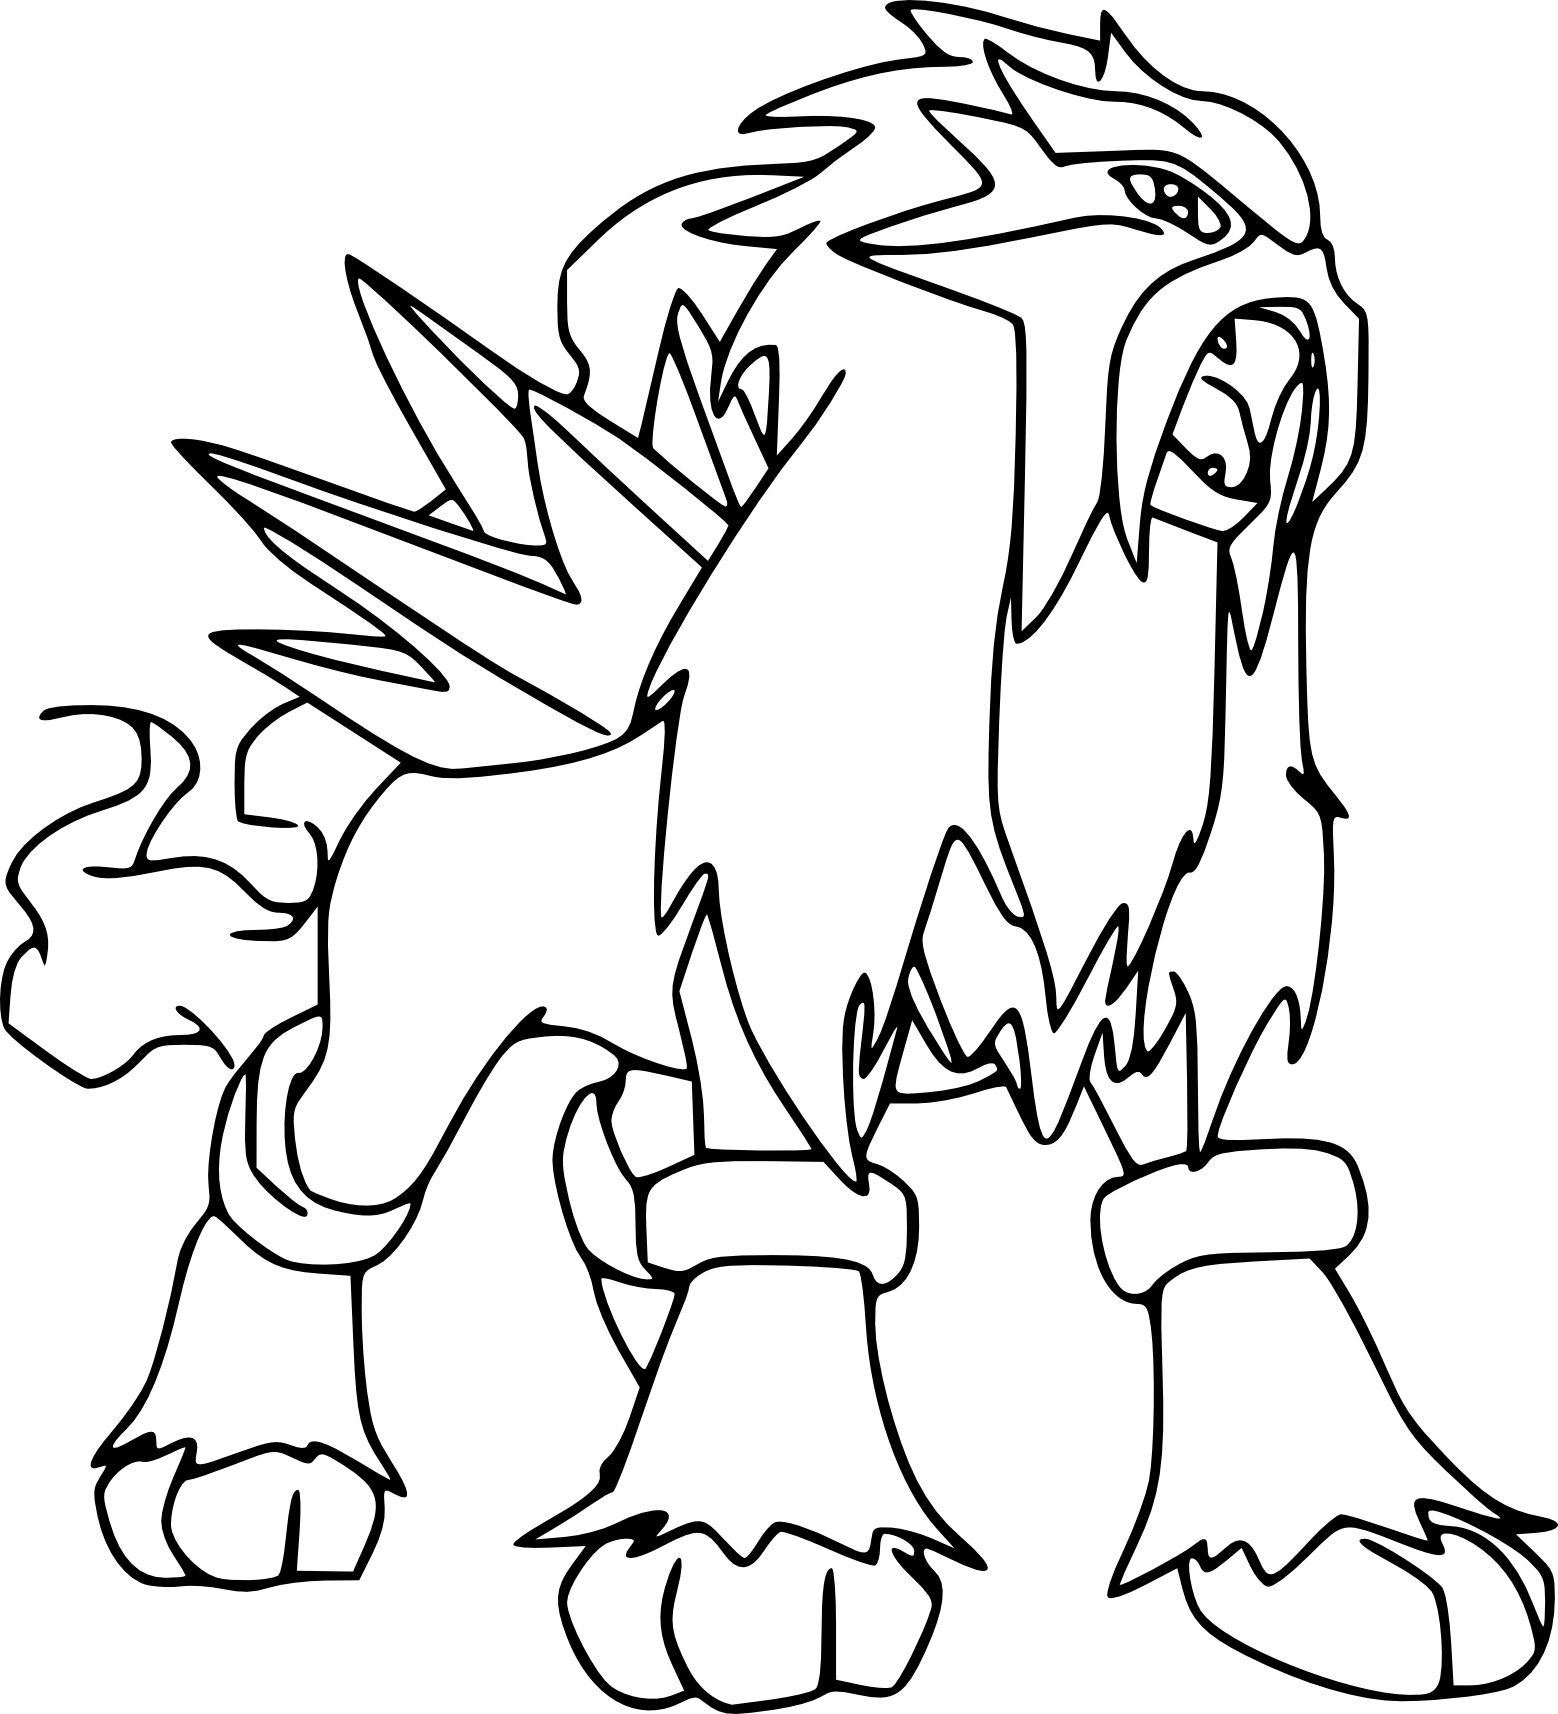 Coloriages A Imprimer Pokemon Numero Ea434a9a